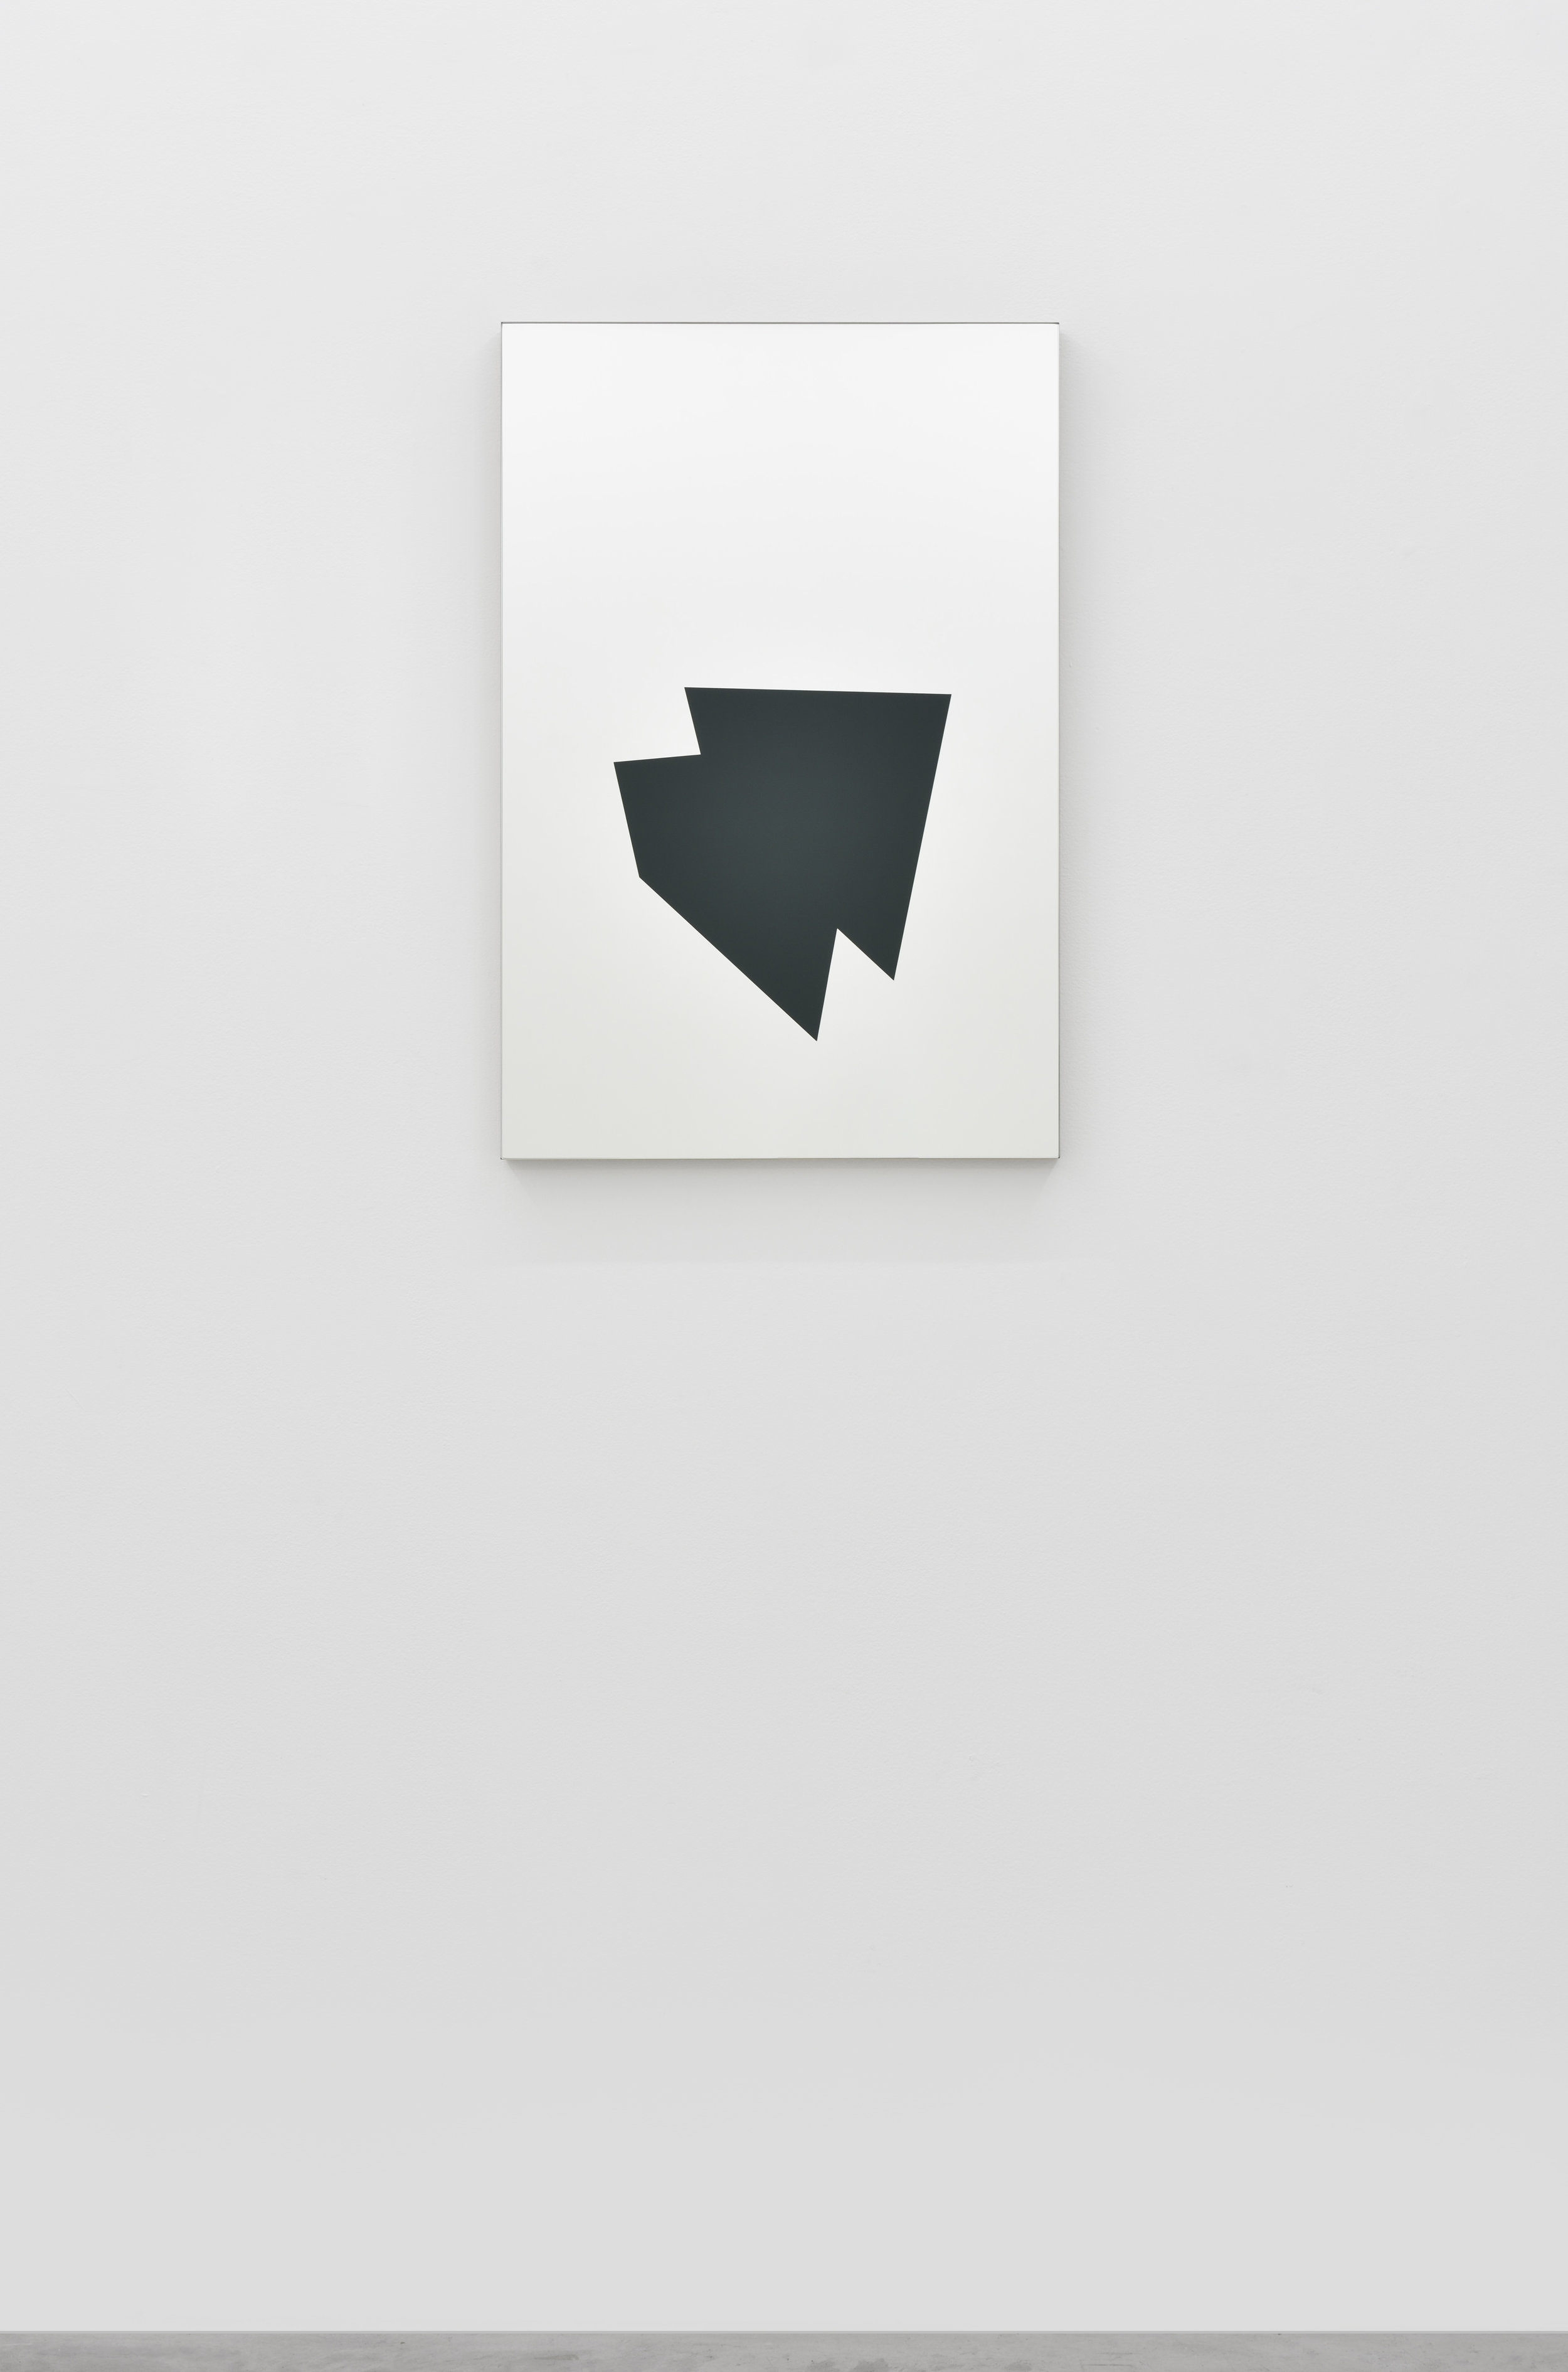 Mirage (25M #1), 2016 gloss paint on mirror 81 x 54 cm - 31 7/8 x 21 1/4 inches